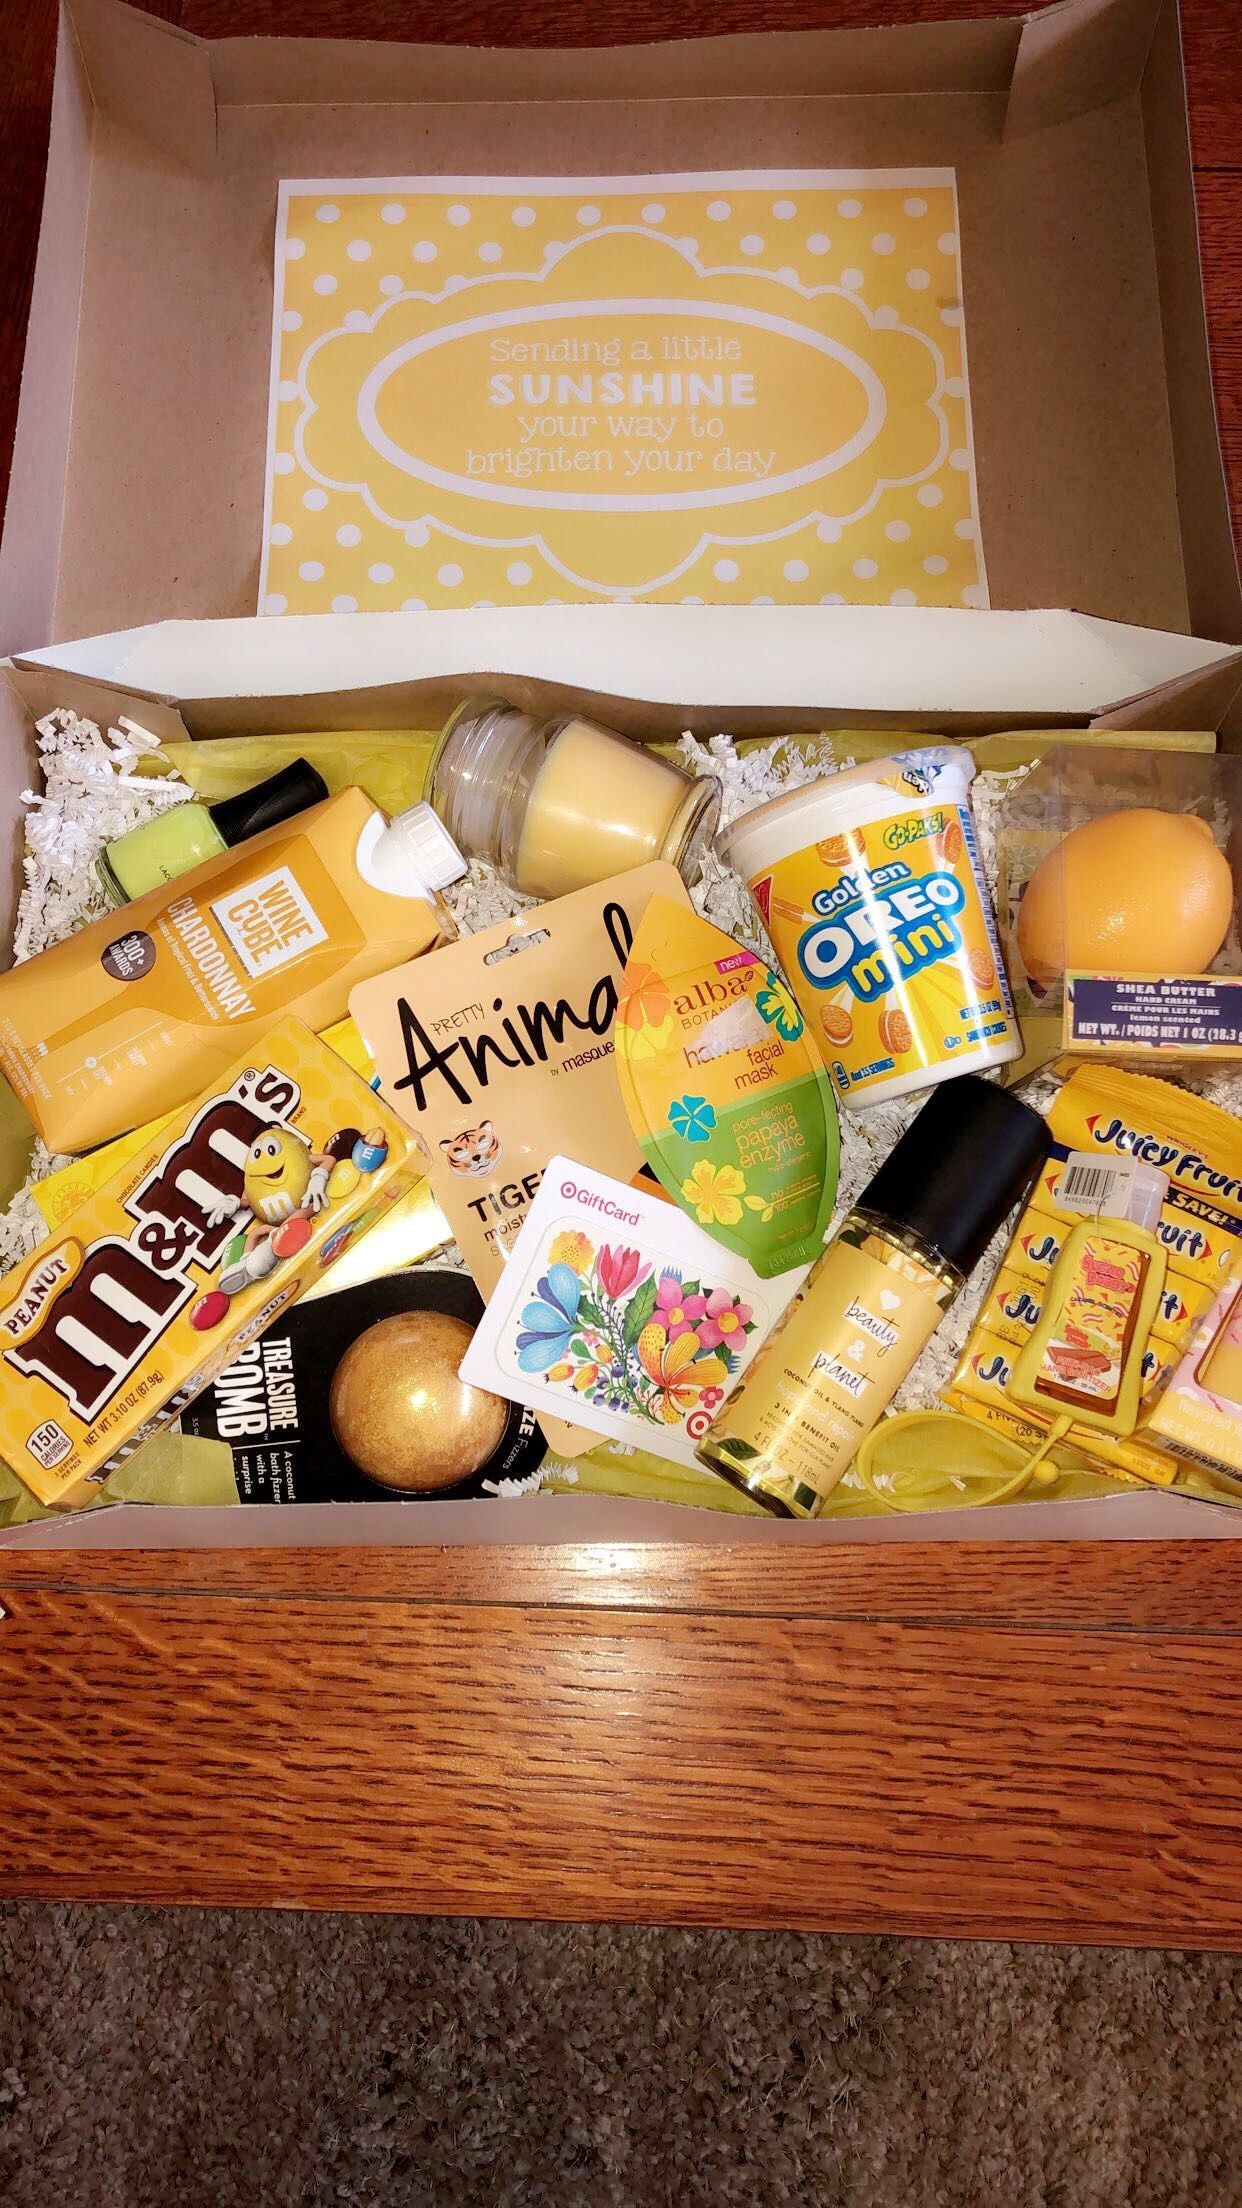 Gift ideas. A yellow box of joy for someone who is down